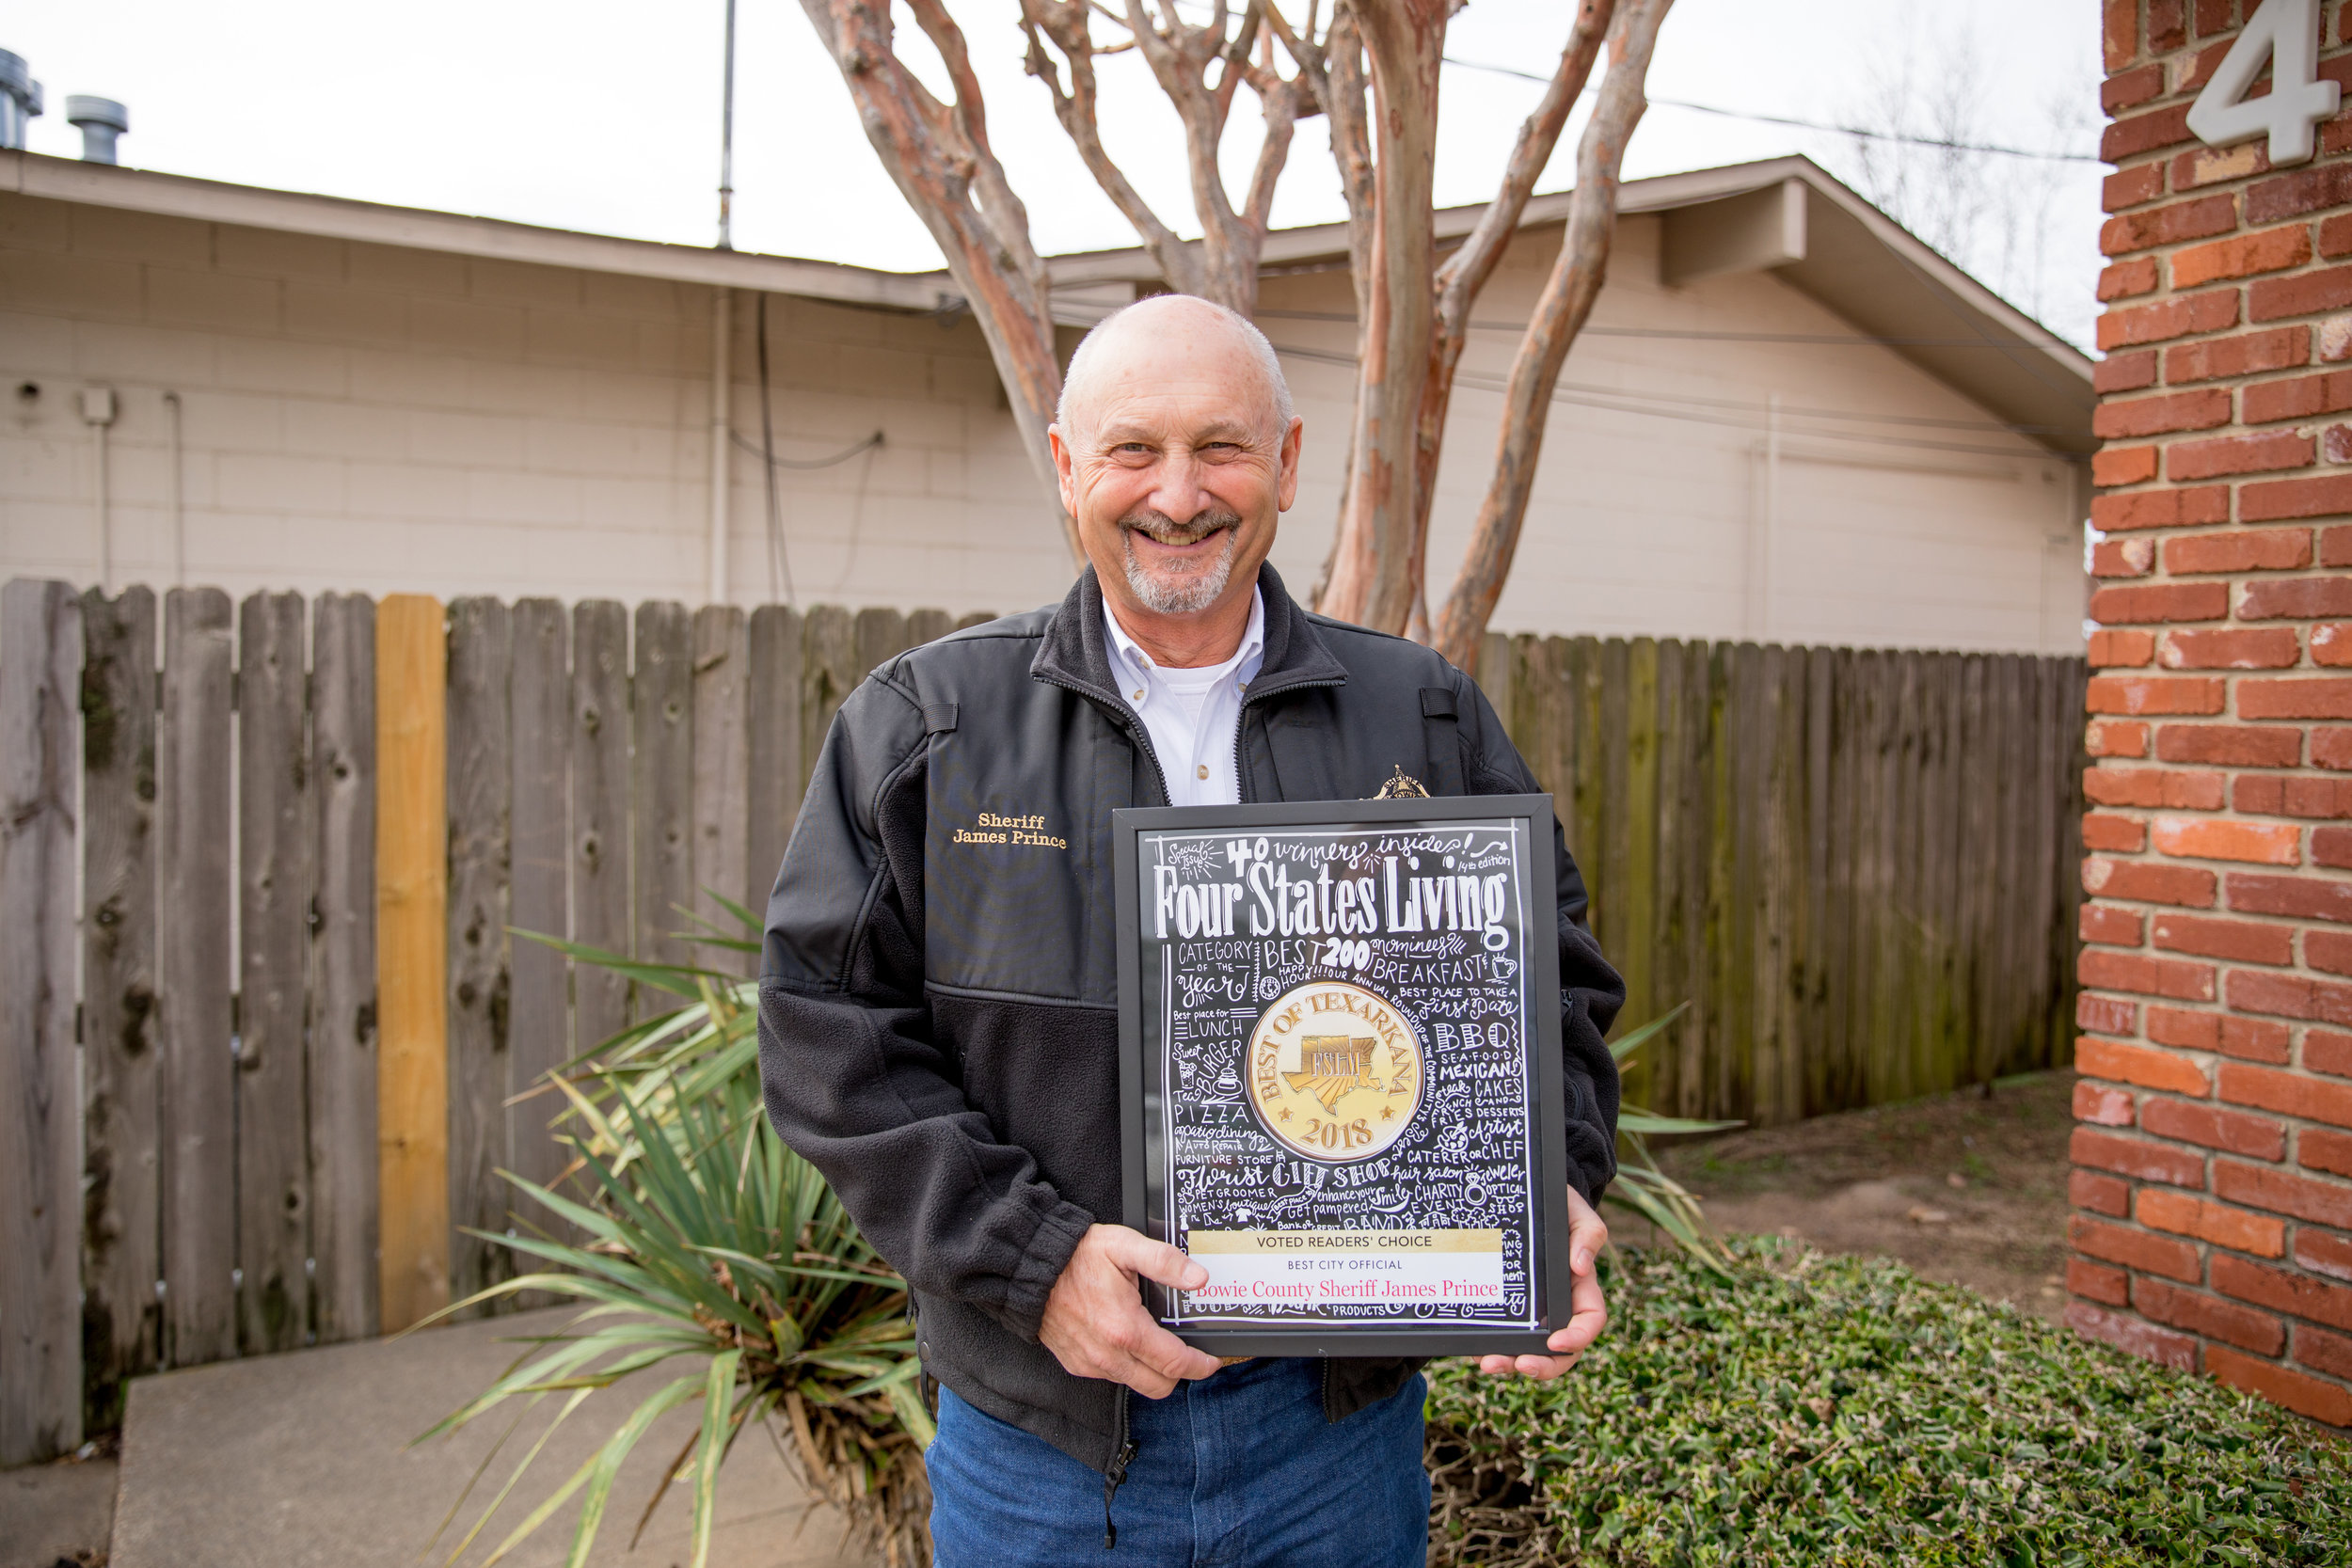 BEST CITY/COUNTY OFFICIAL – Bowie County Sheriff James Prince